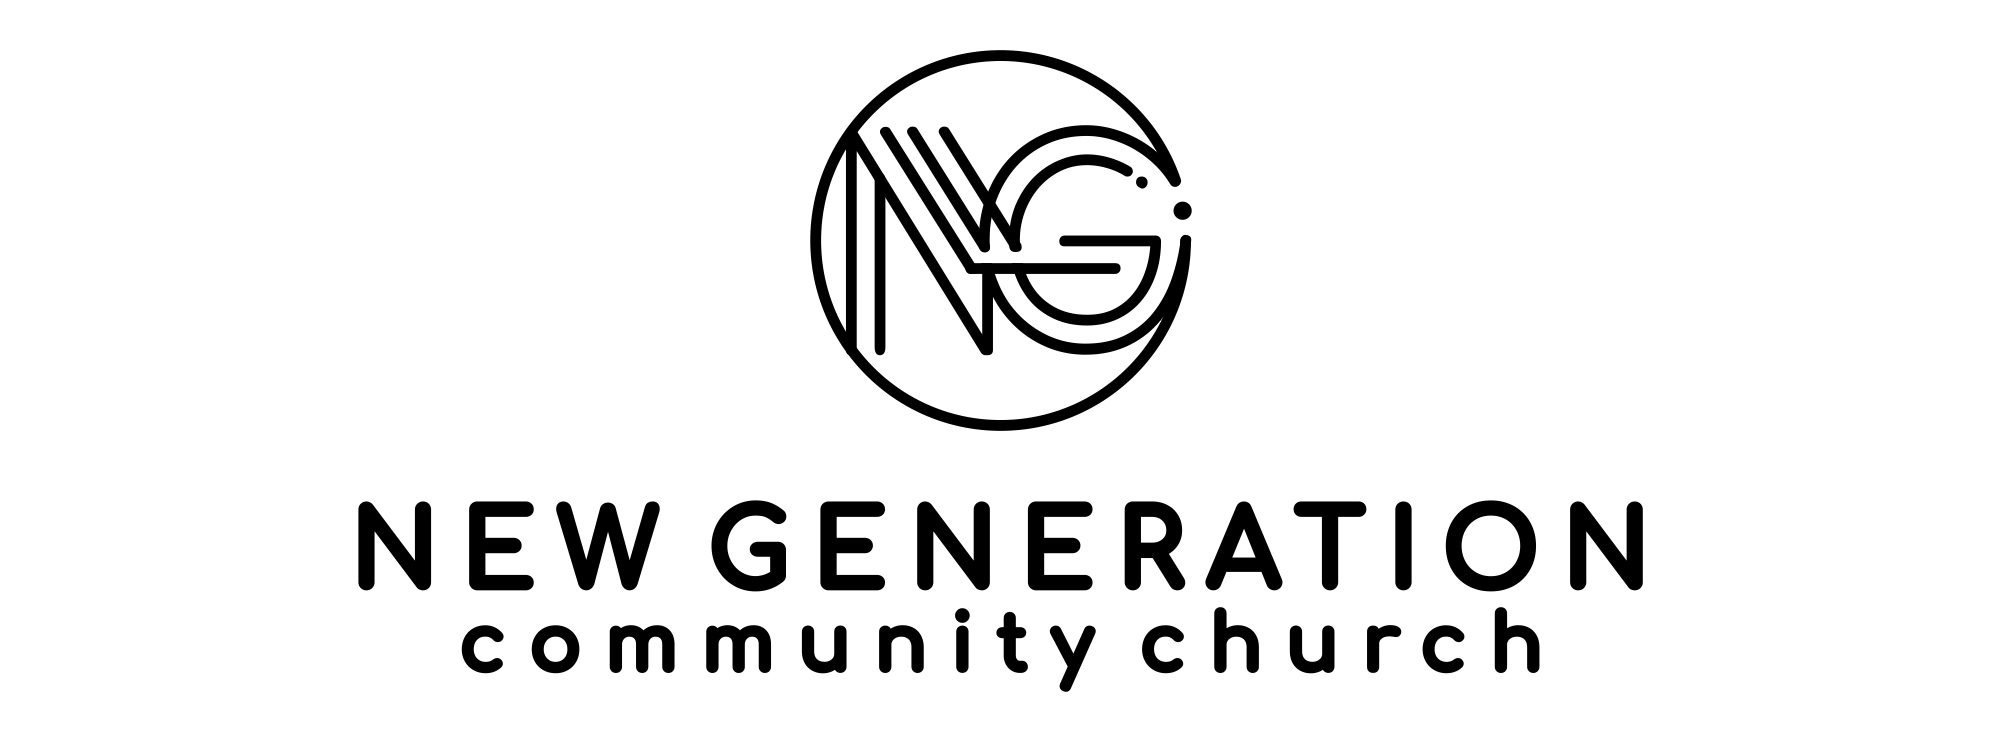 New Generation Community Church